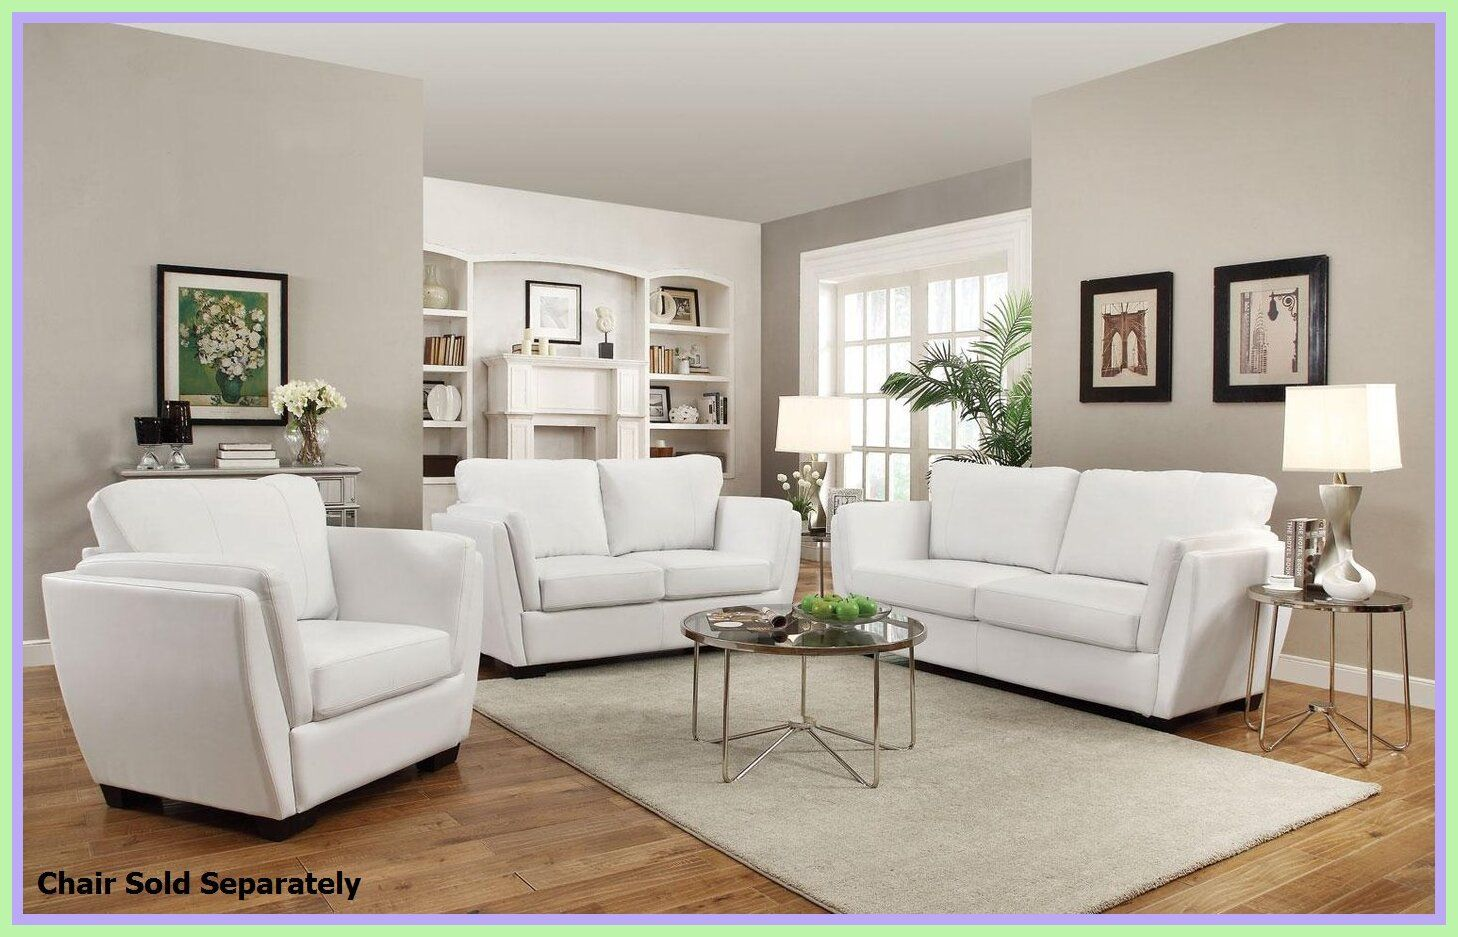 96 Reference Of White Furniture Sofa Set In 2020 Sofa And Loveseat Set Furniture Sofa Set Couch And Loveseat